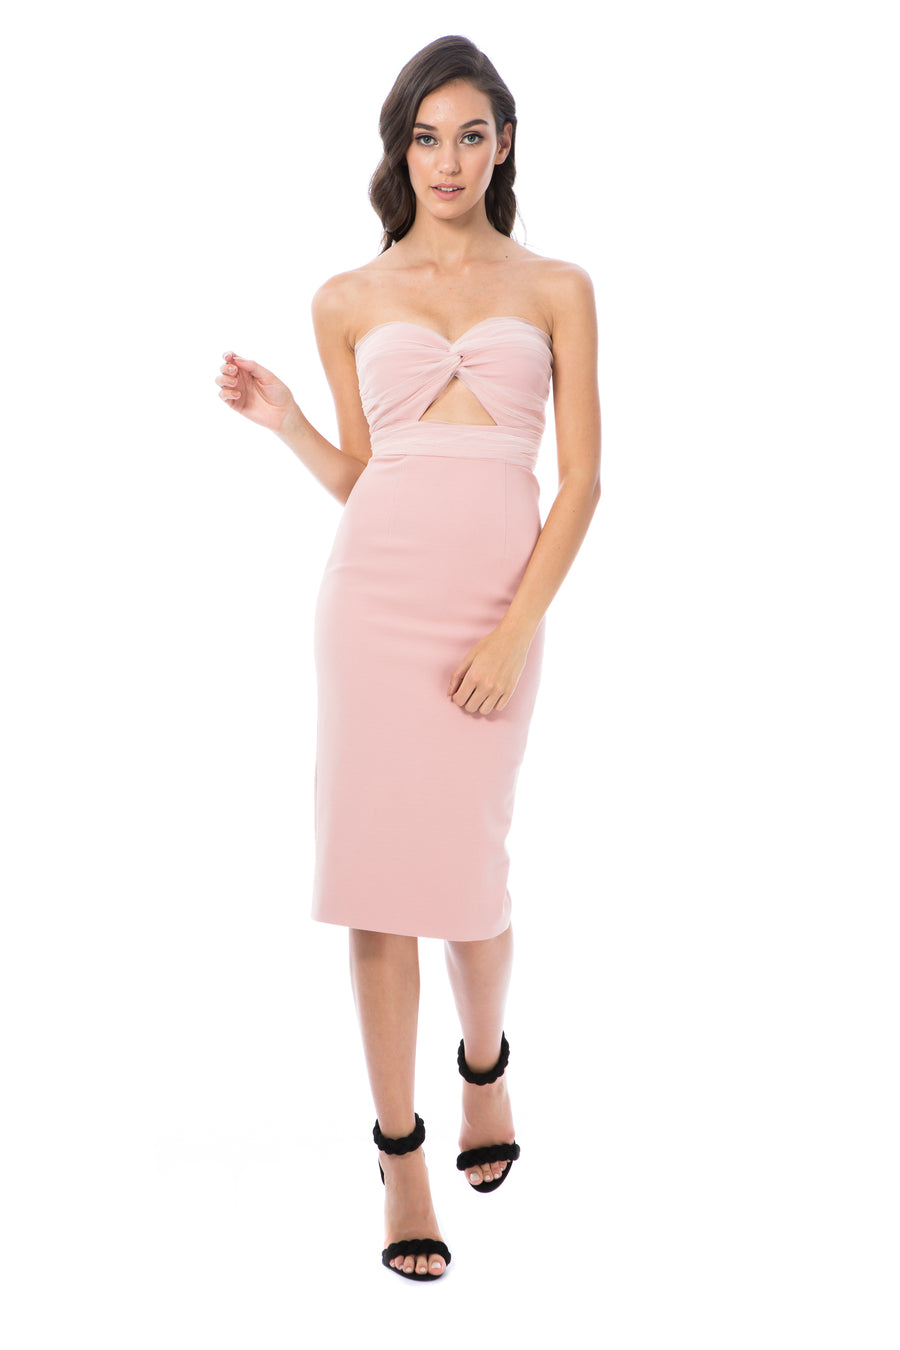 NICOLETTE - PINK - GEORGY COLLECTION